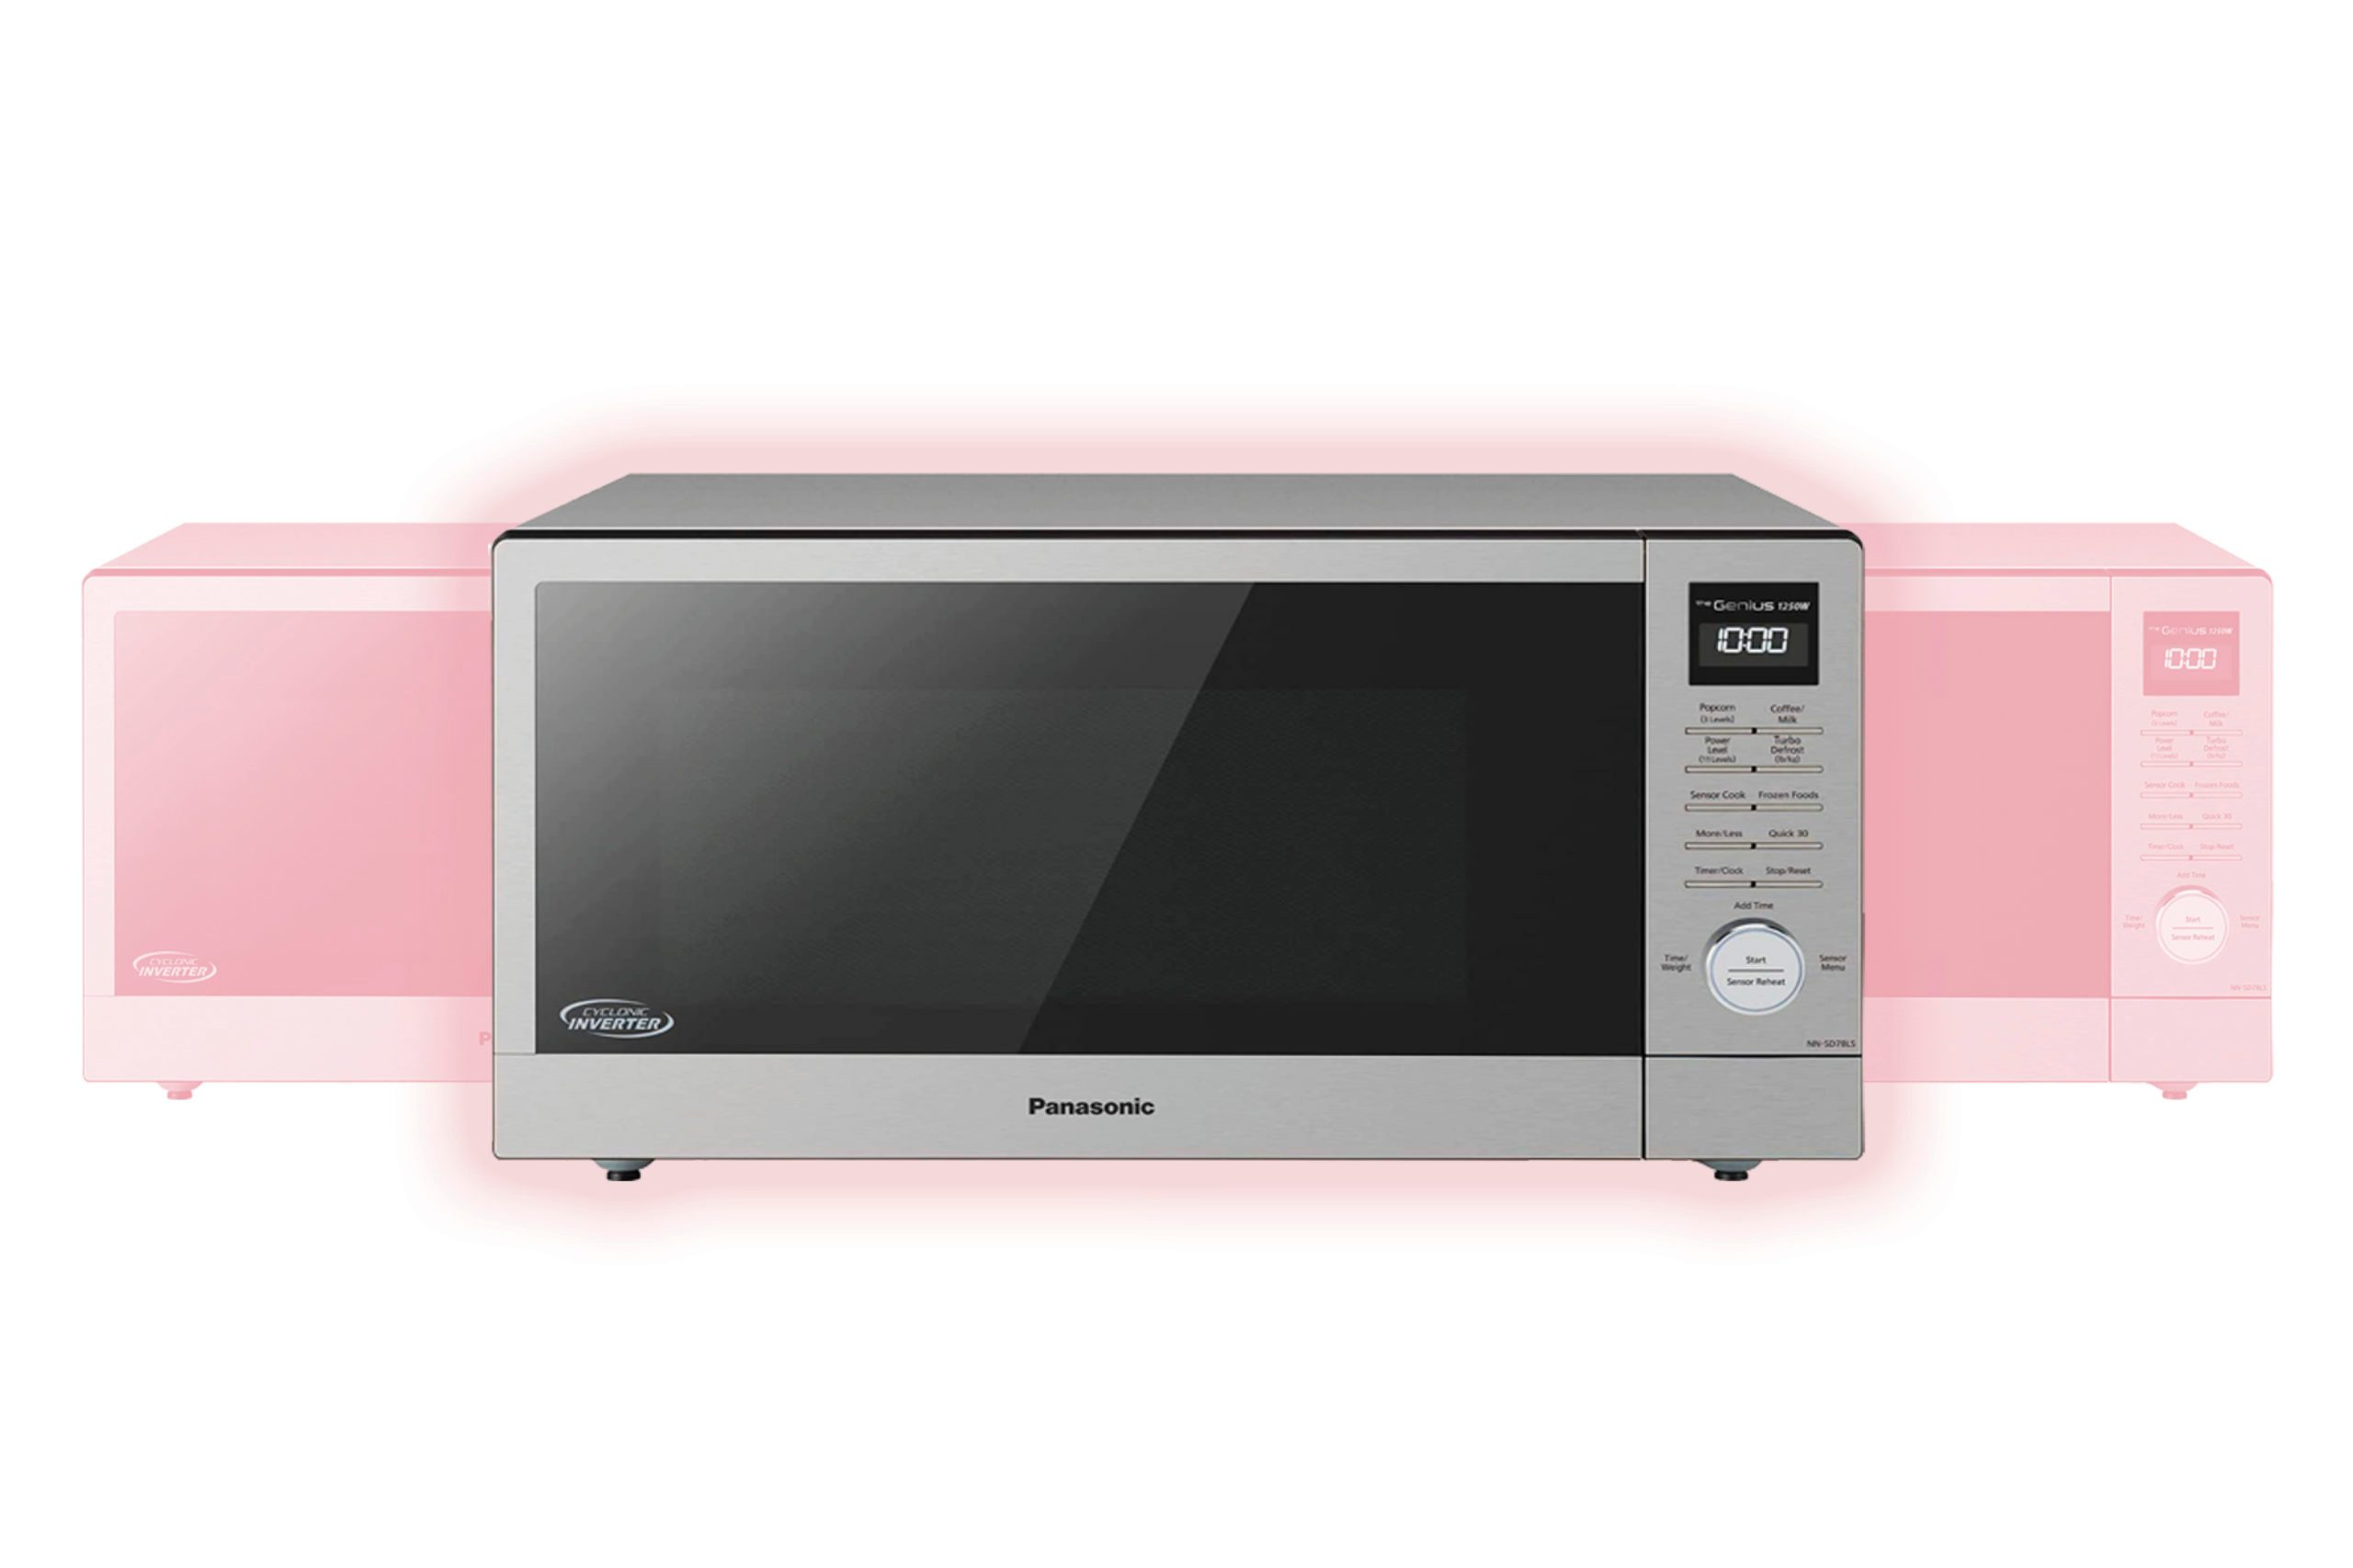 Panasonic NN-SD78LS Countertop Microwave oven with Cyclonic Wave Inverter, Genius Sensor, 1250W of Cooking Power, 1.6 cft, Stainless Steel/Silver